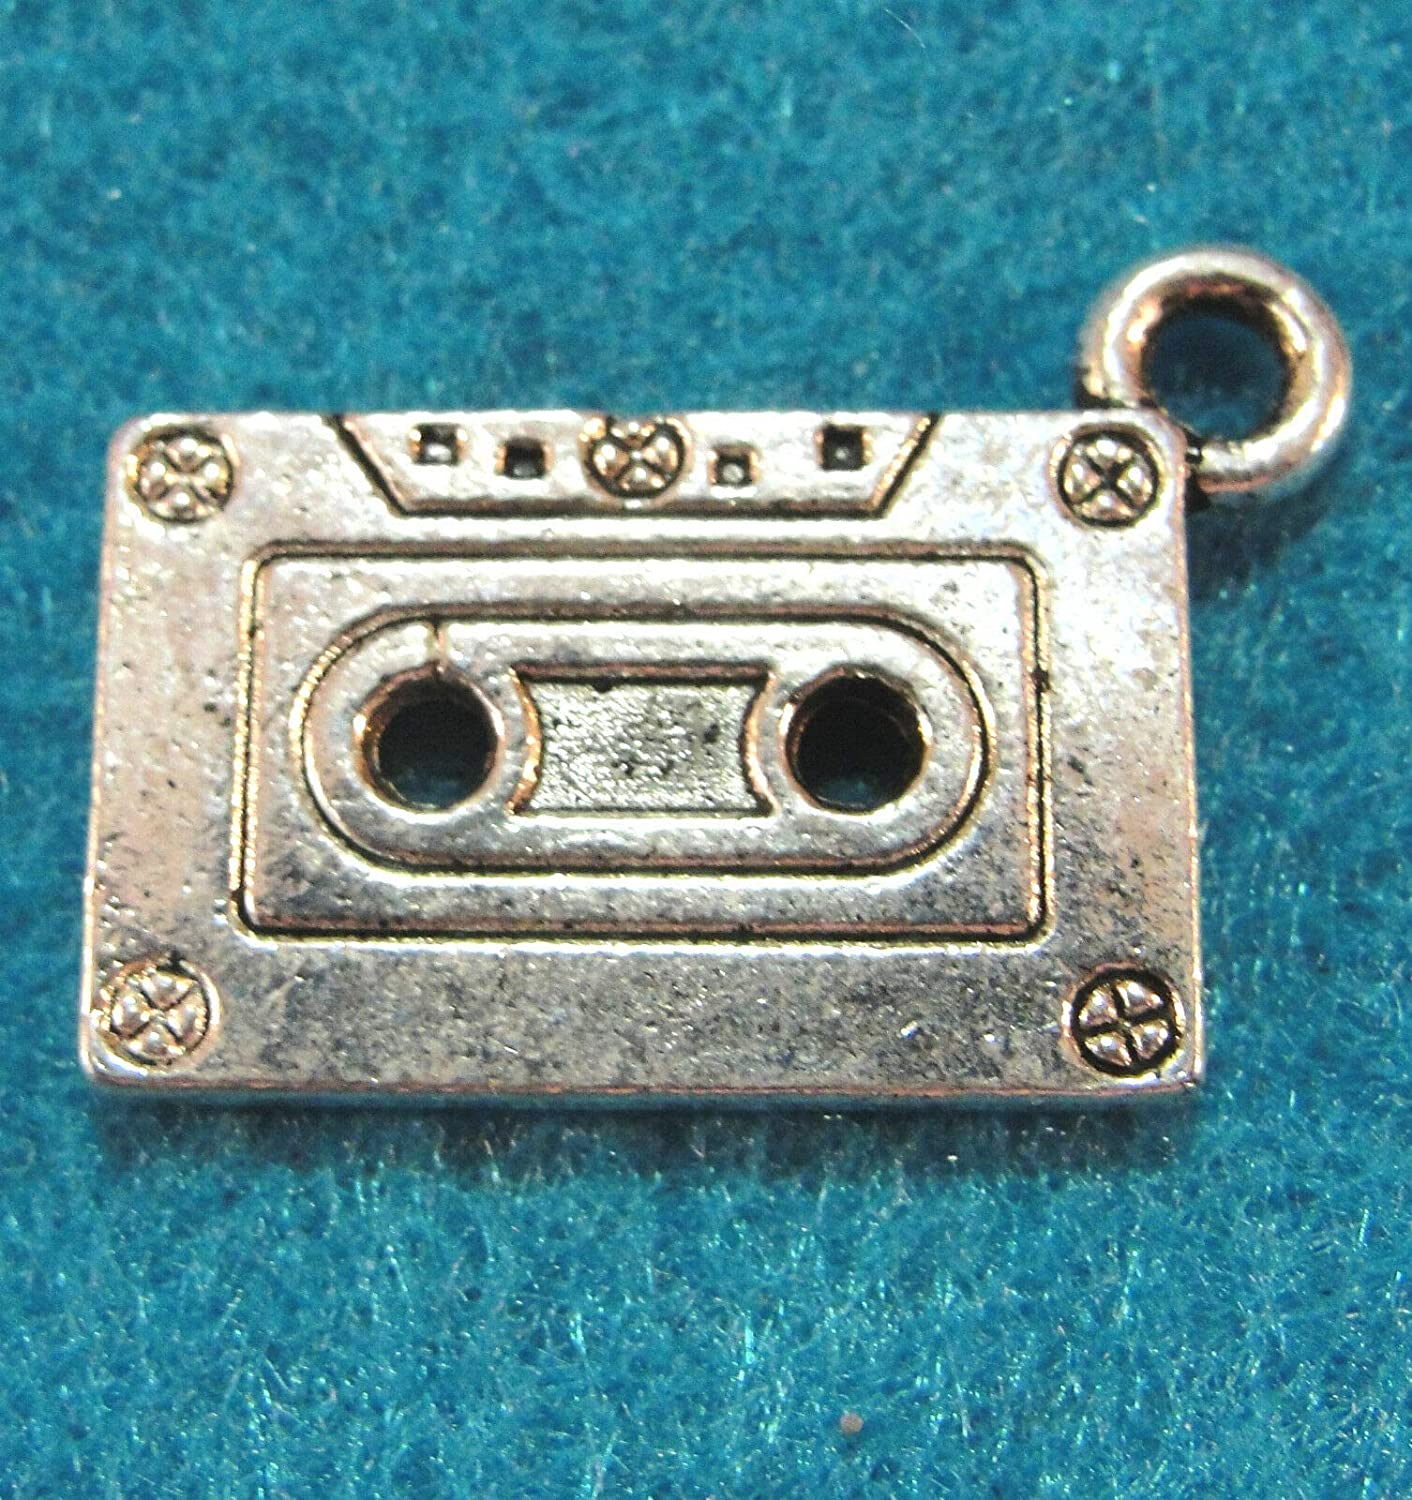 10Pcs. Tibetan Antique Silver Cassette Tapes mart Jewelry Charms Spasm price VHS